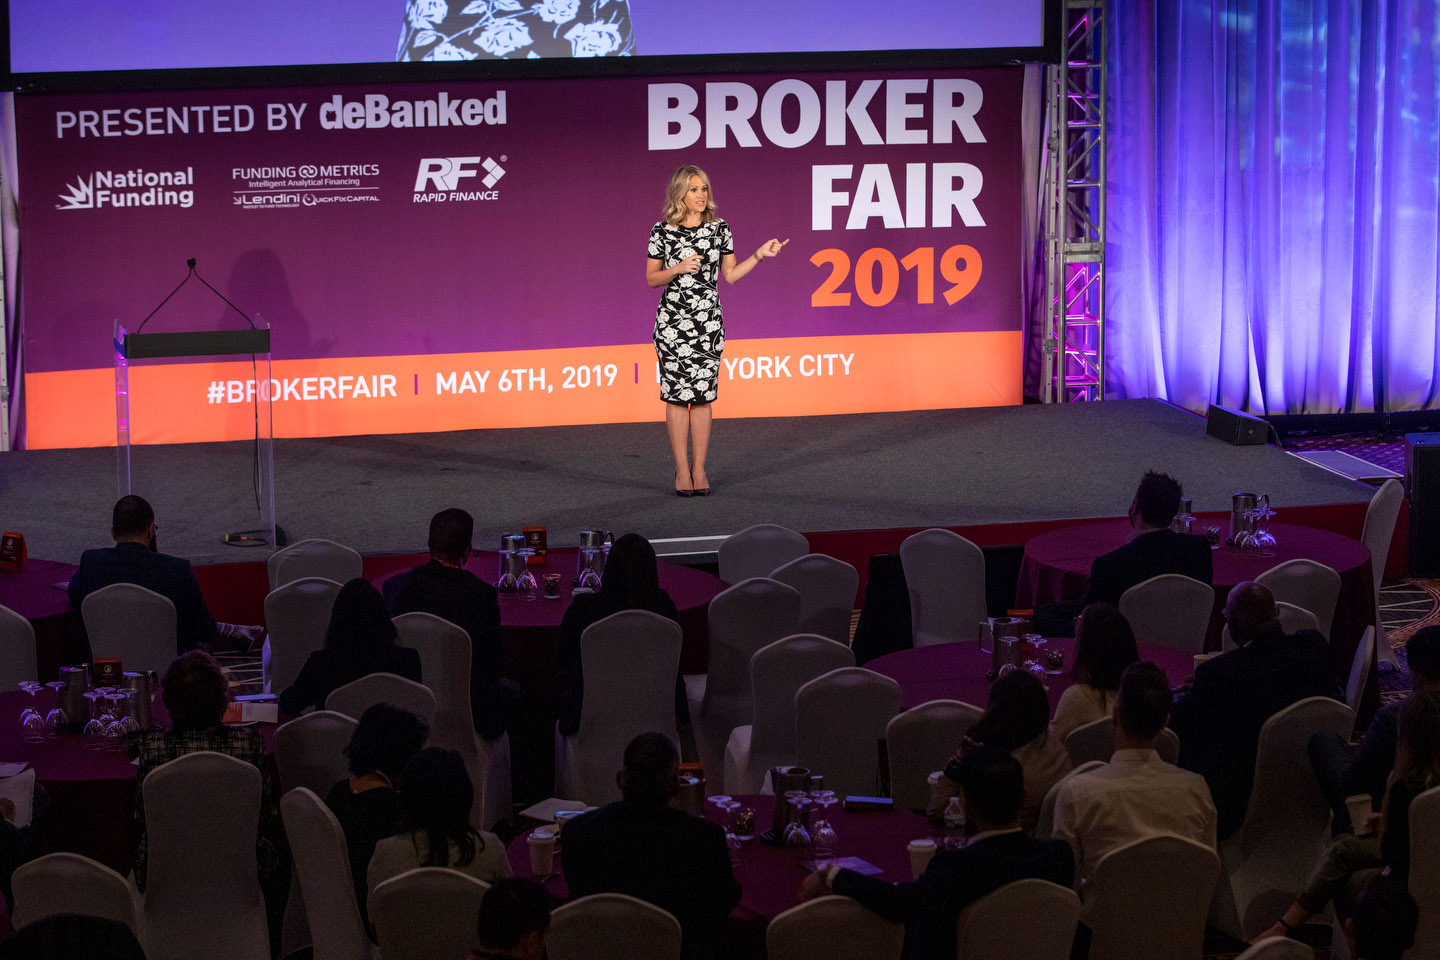 Broker Fair 2019 - Presented by deBanked - 373